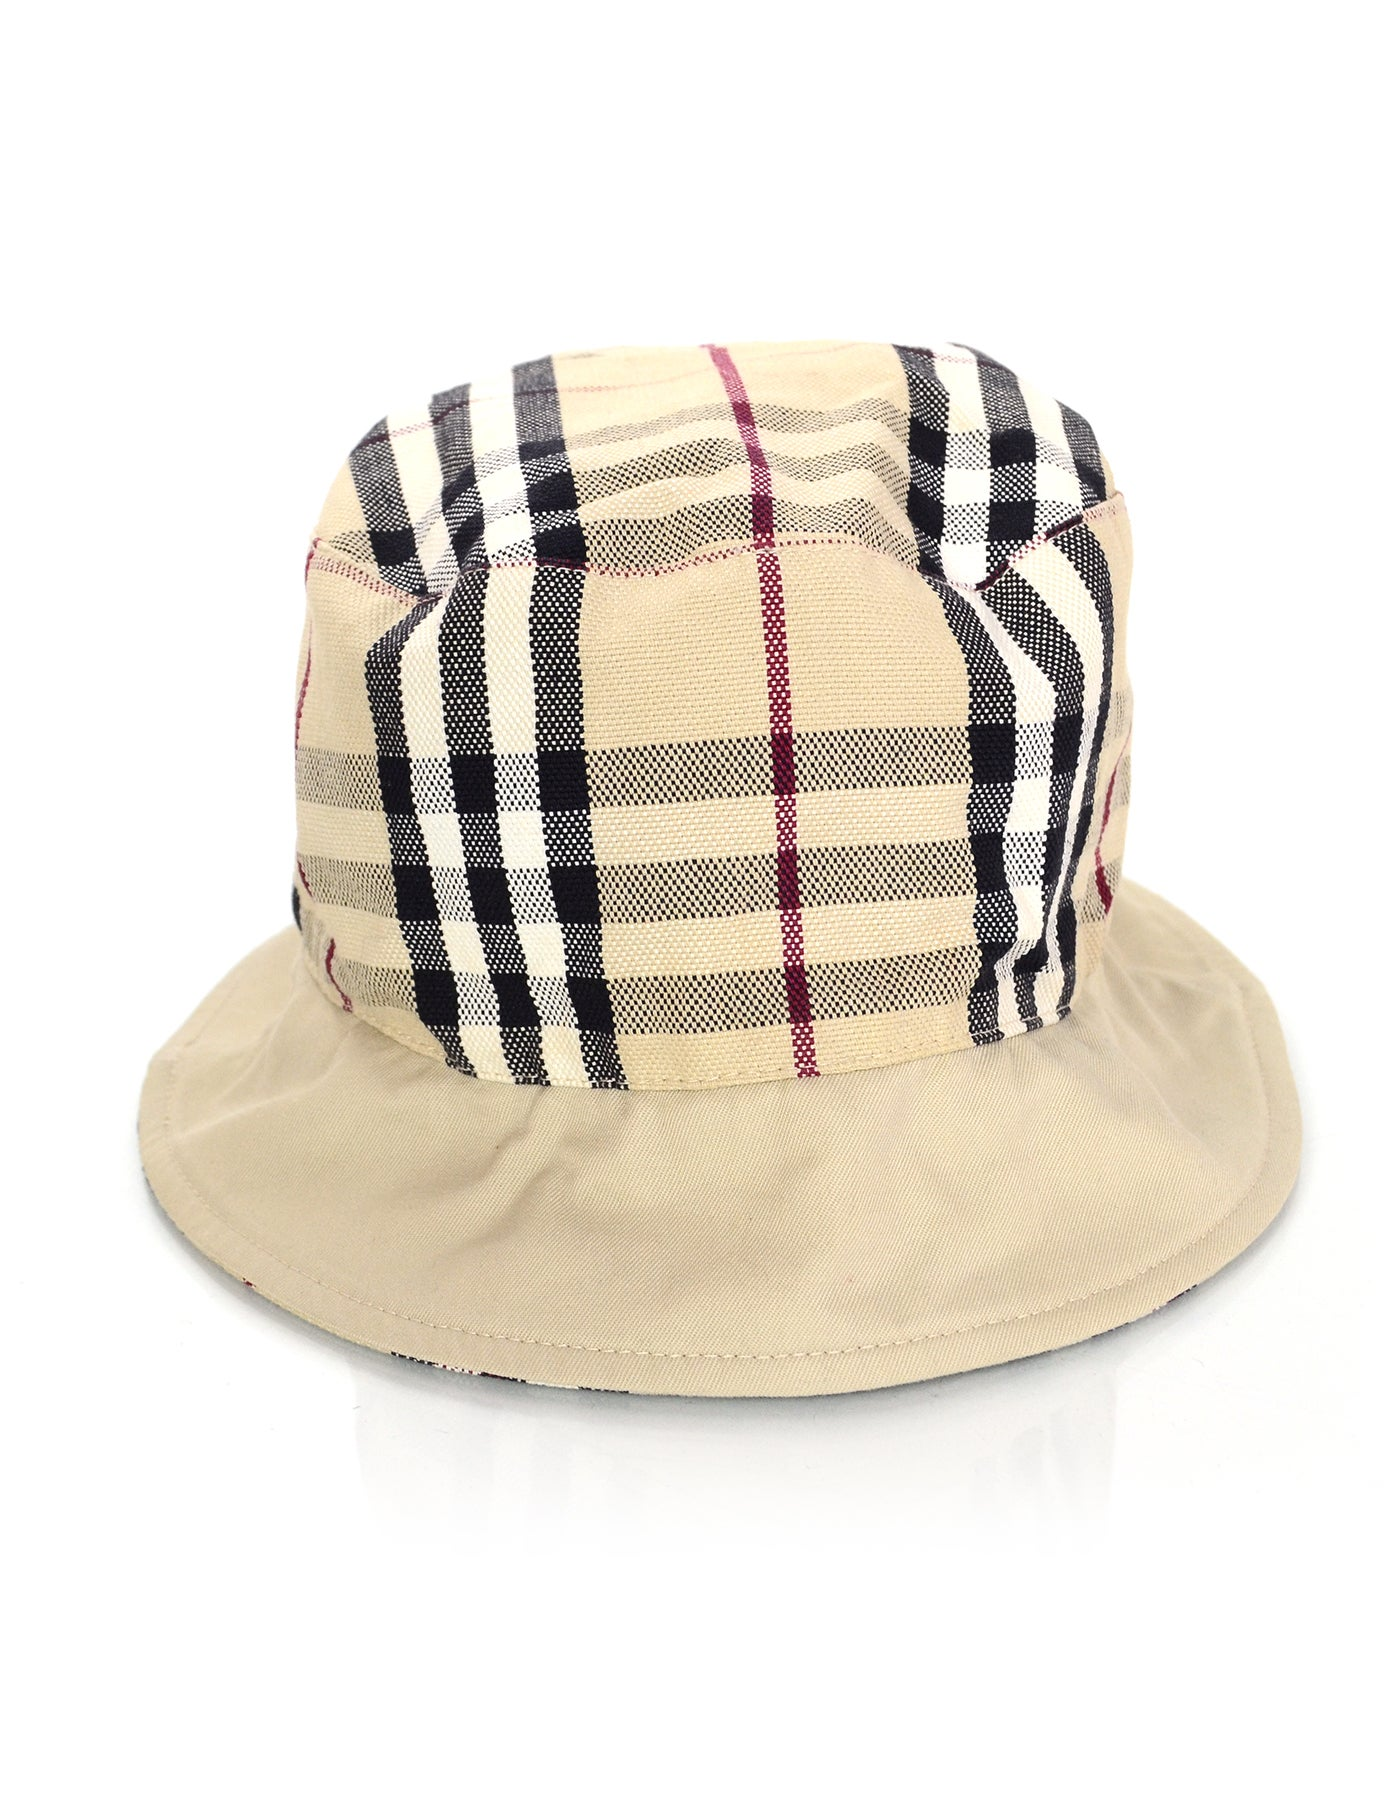 Burberry Nova Plaid Hat Reversible For Sale at 1stdibs d954b50239b